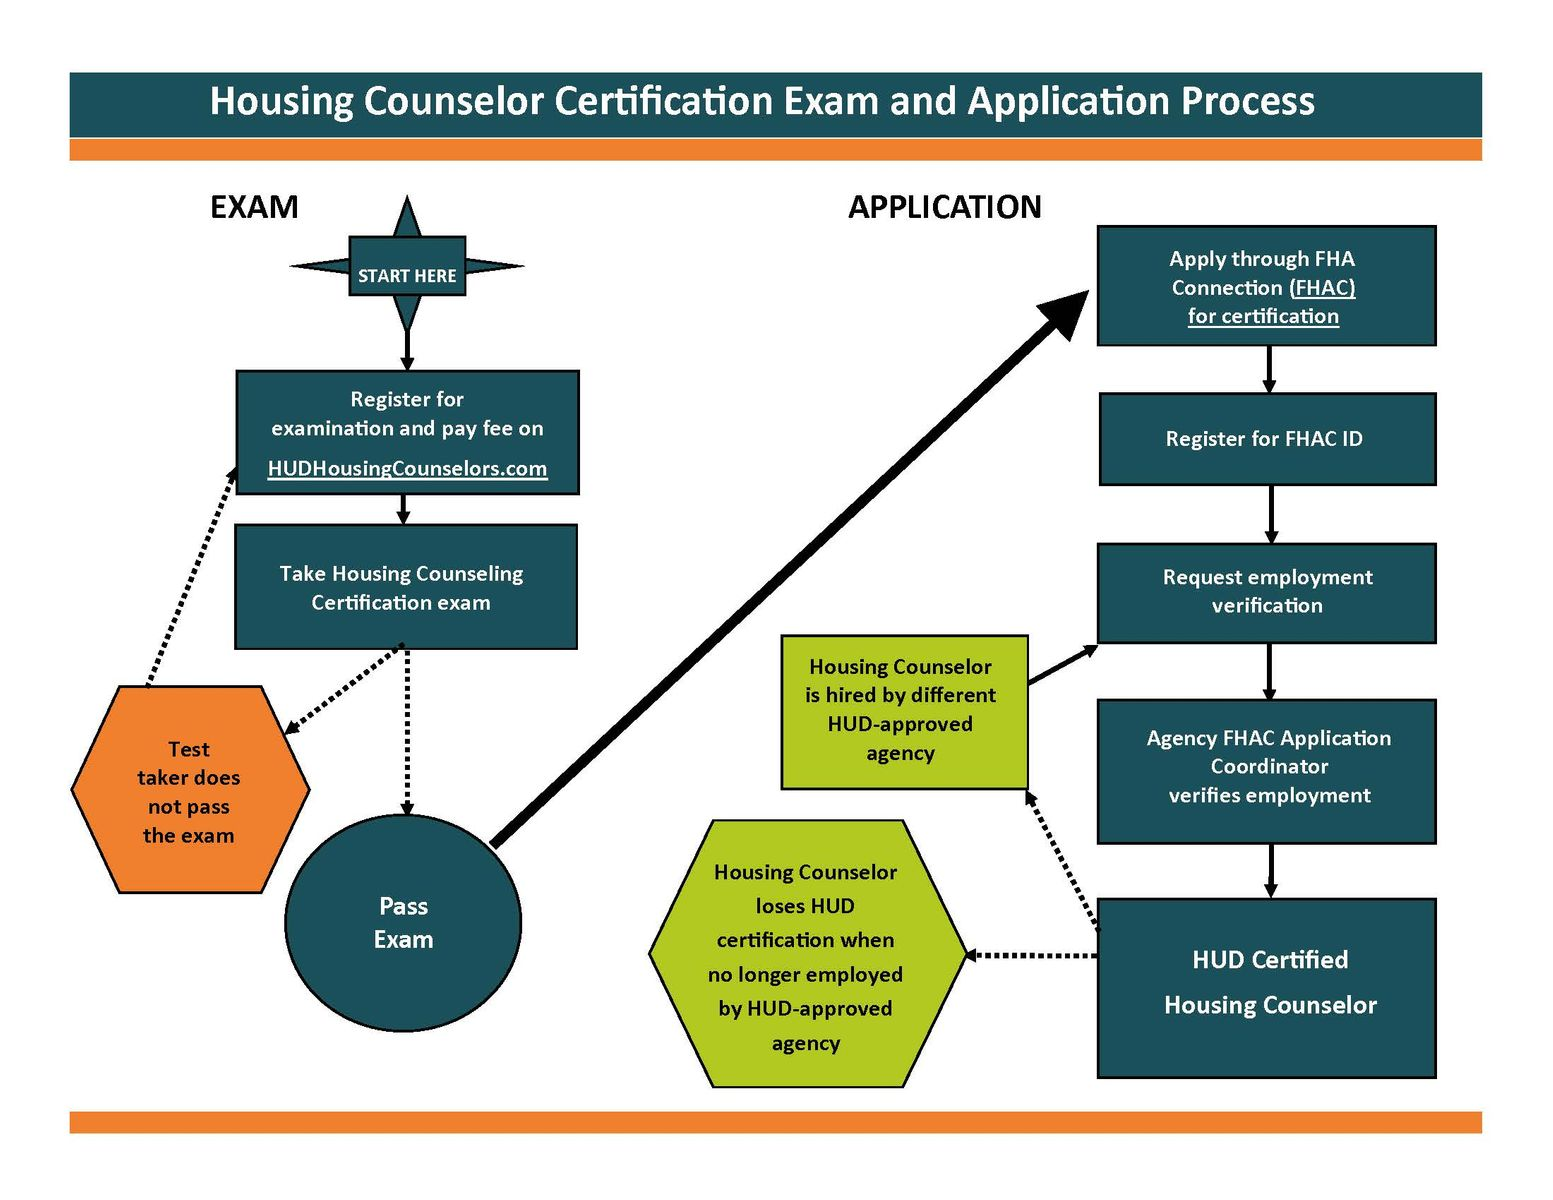 Becoming HUD certified involves two processes: the exam and the application. First, a counselor needs to register for the examination through HUDHousingCounselors.com and pay the fee to take the exam. Then, the counselor must take the exam. If the counselor does not pass the exam, they must register again and pay the fee again. Once the counselor passes the exam, they can begin the application process through FHA Connection. The counselor must register for an FHAC ID in the FHA Connection. After they receive their ID and password, they must request employment verification. An Agency FHAC Application Coordinator will verify that the counselor works for a HUD-Approved Housing Counseling Agency. Once the Application Coordinator verifies the counselor's employment, the counselor is HUD Certified. If a Housing Counselor is hired by a different HUD-approved agency at any time, they must have their employment verified in FHA Connection by their new FHAC Application Coordinator. If a Housing Counselor is no longer employed by a HUD-approved agency, the housing counselor is no longer HUD certified.